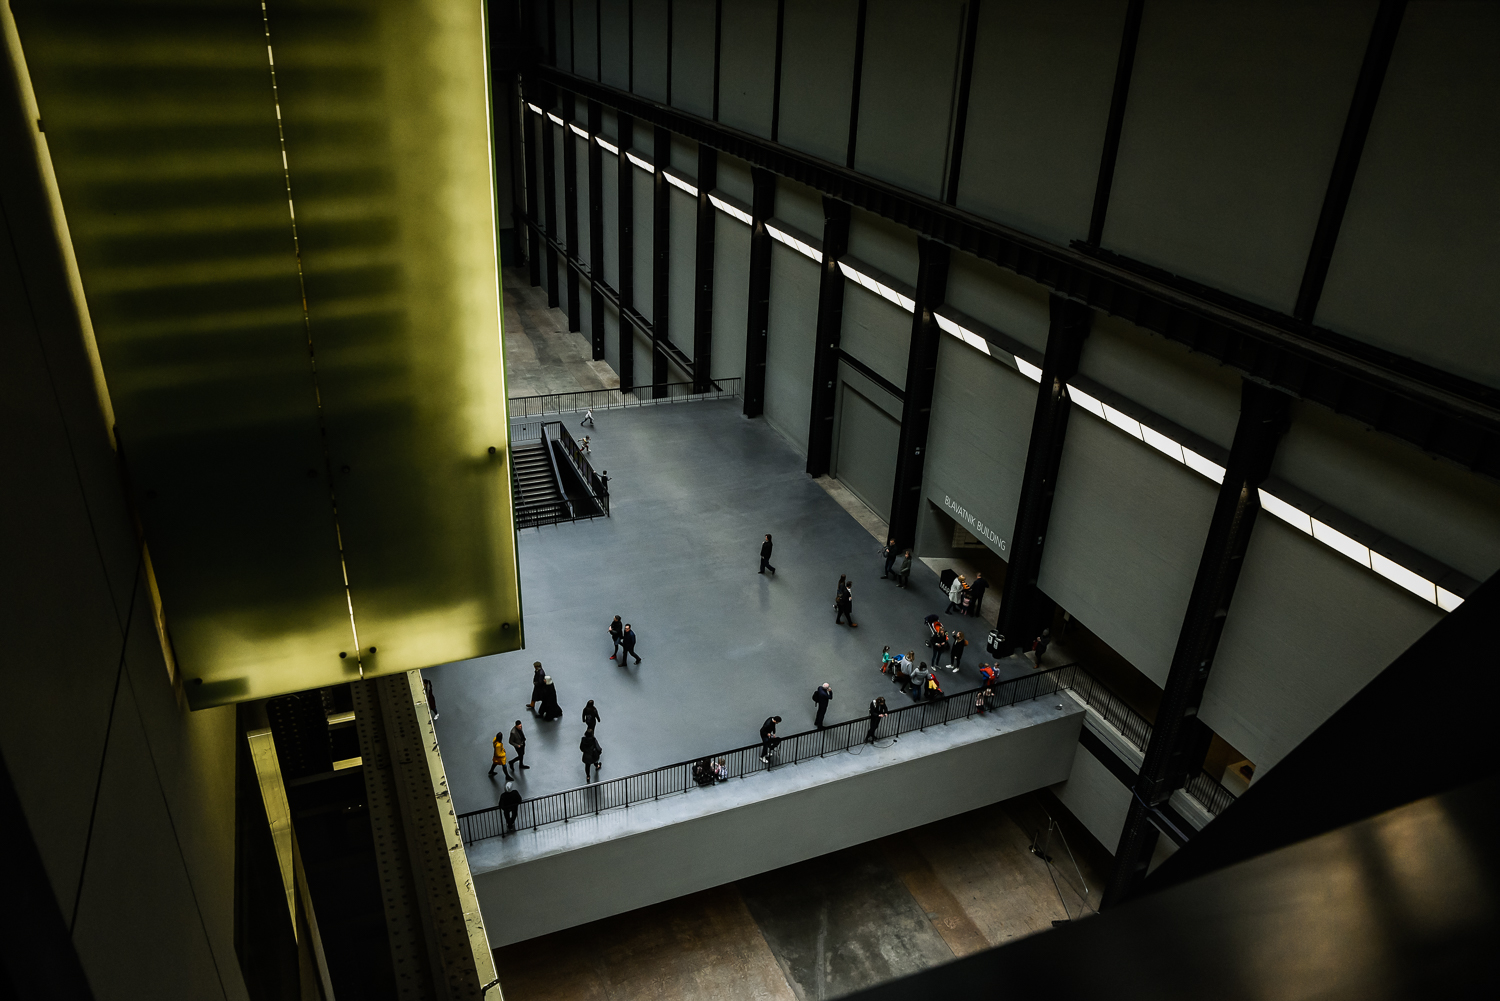 Turbine-hall-tate-modern-art-space-diana-hagues-photography